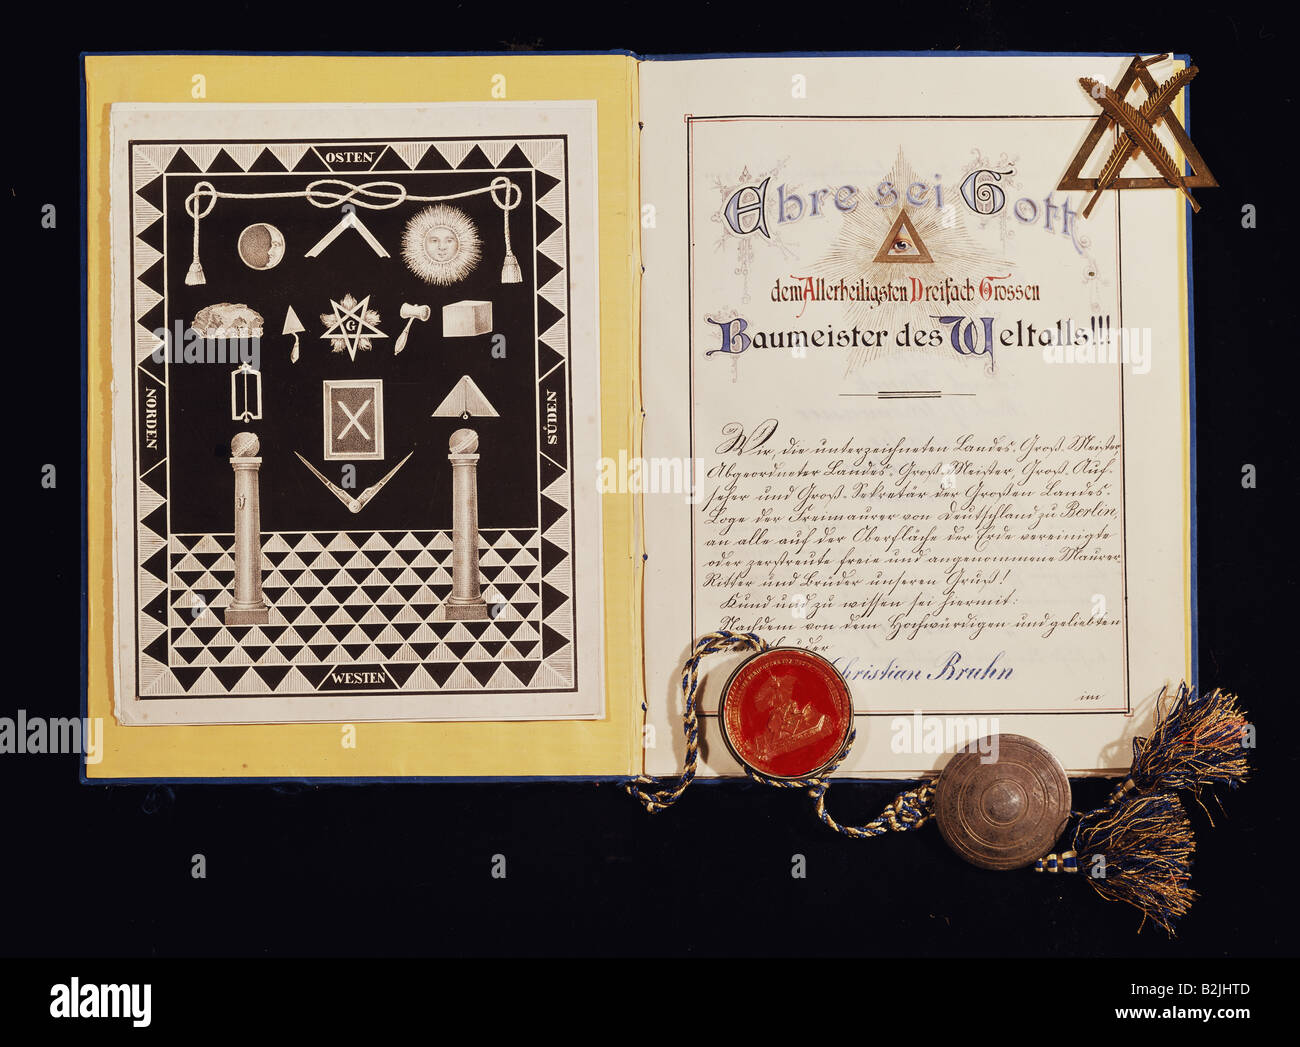 """freemason, articles of incorporation, Johannesloge """"In Treue fest"""", Munich, Germany, 1903, private collection, Additional Stock Photo"""